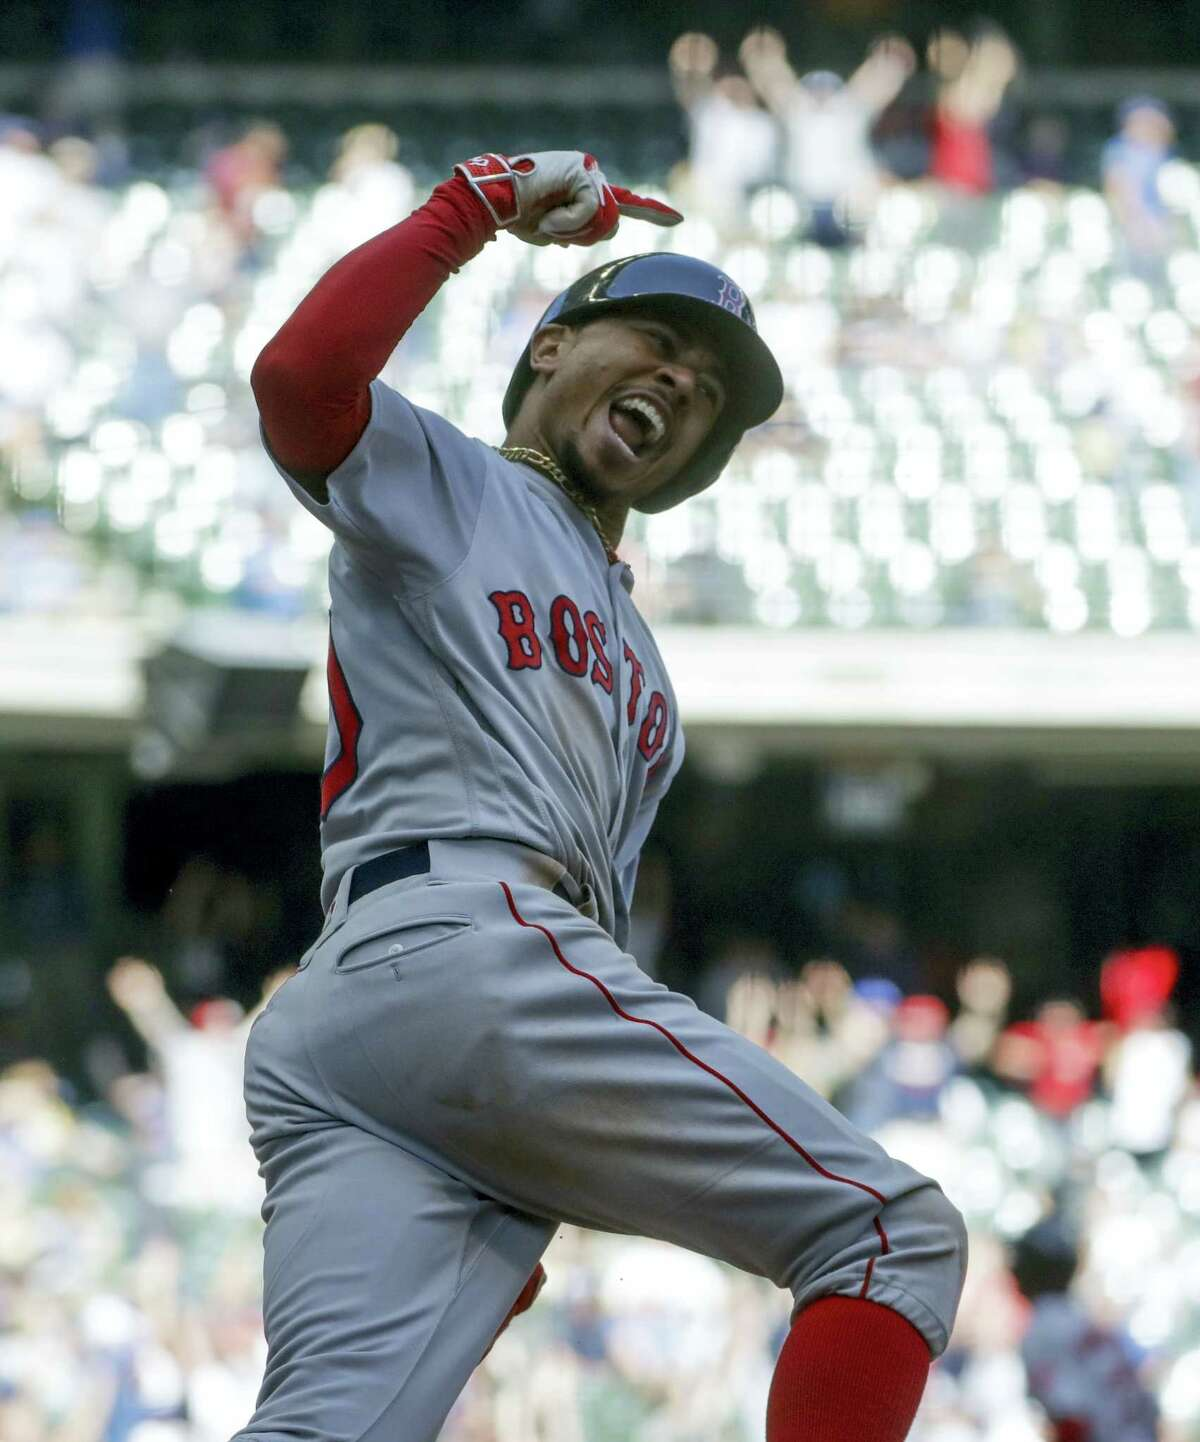 Mookie Betts reacts as he rounds first after hitting a home run in the ninth inning.